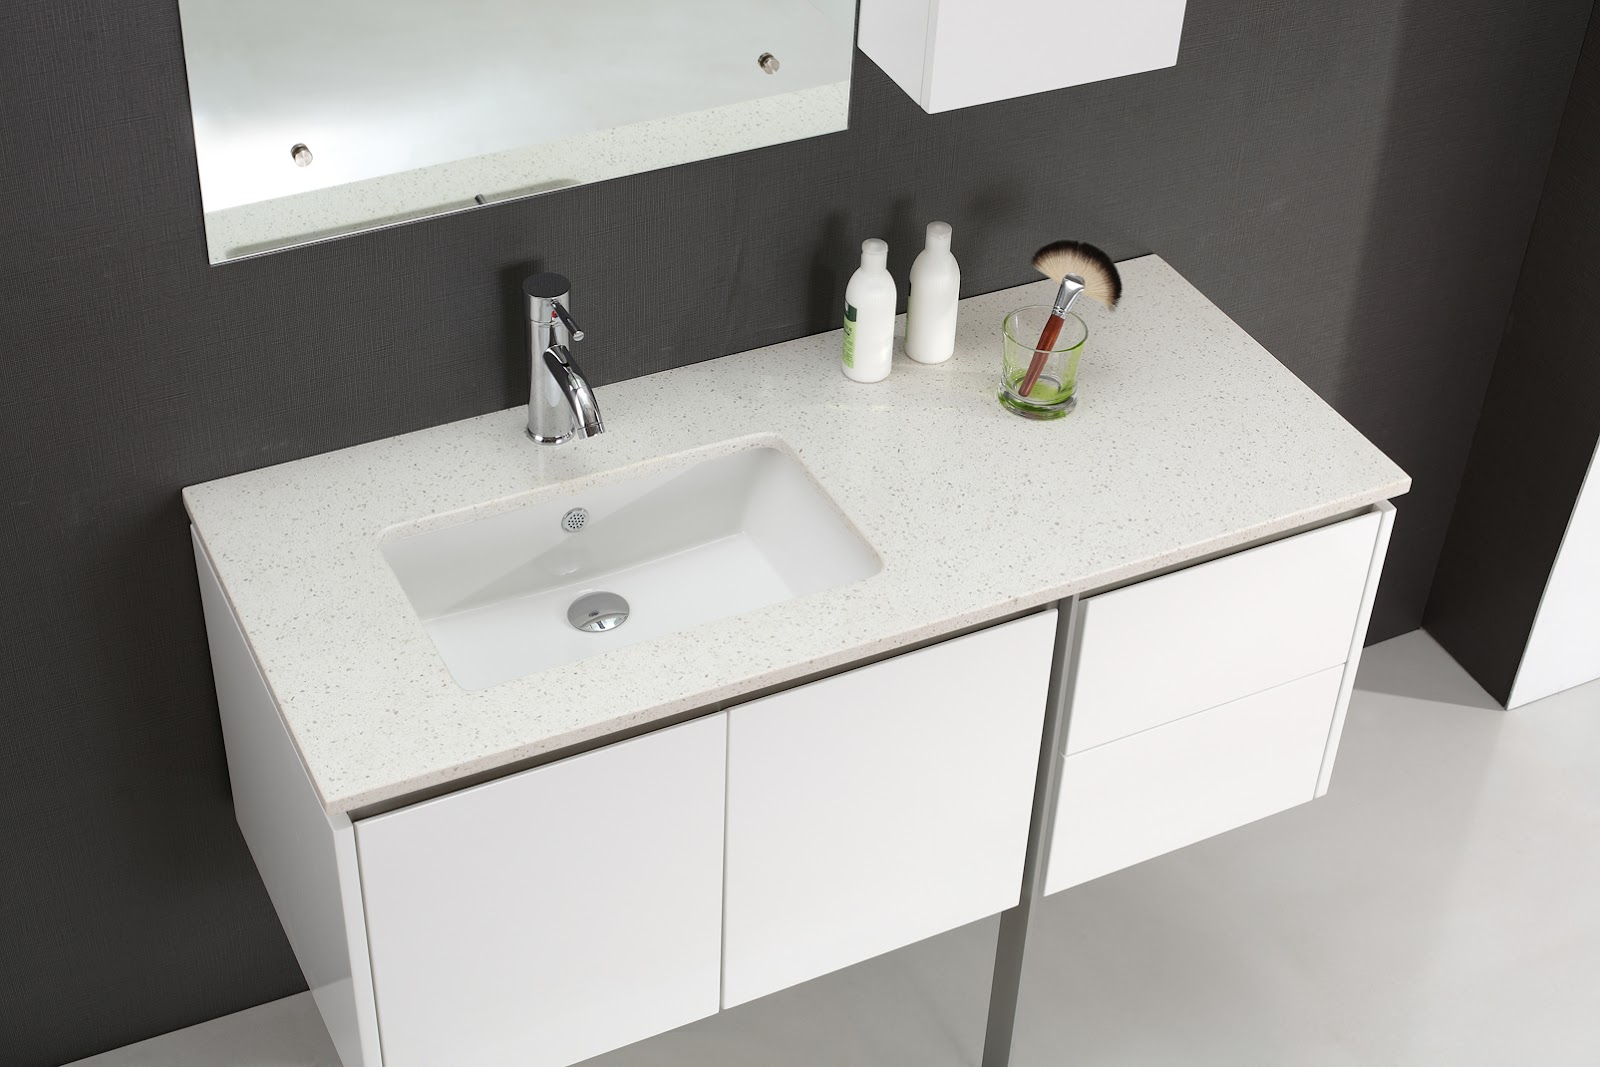 1200mm Bathroom Vanity Merida 1200mm Luxury White Vanity For Modern Bathrooms